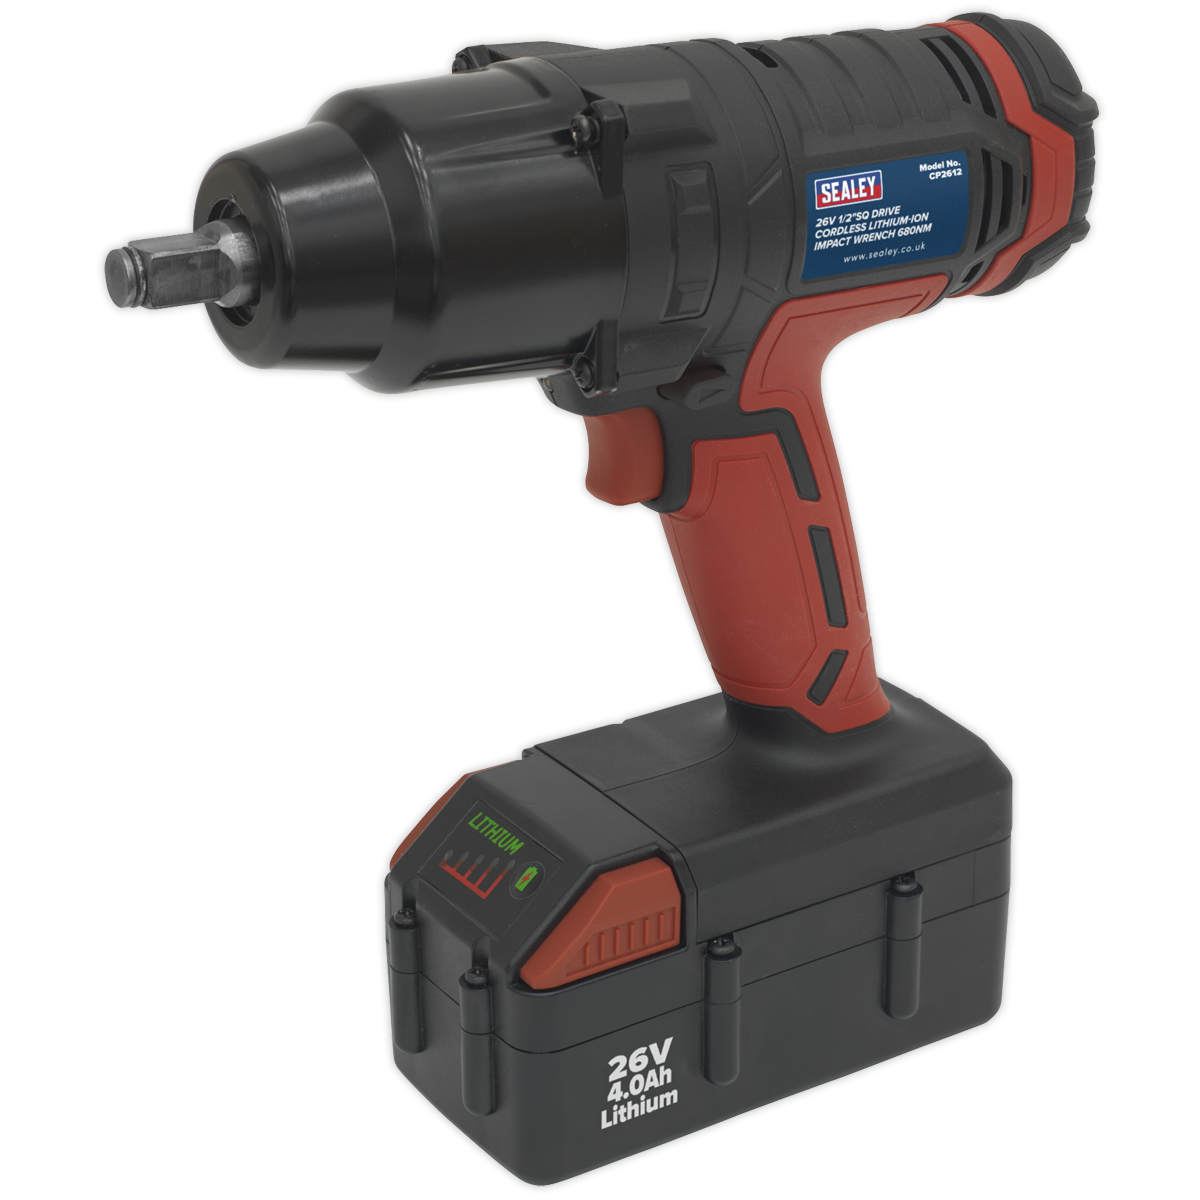 Cordless Impact Wrench 26V Lithium-ion 1/2